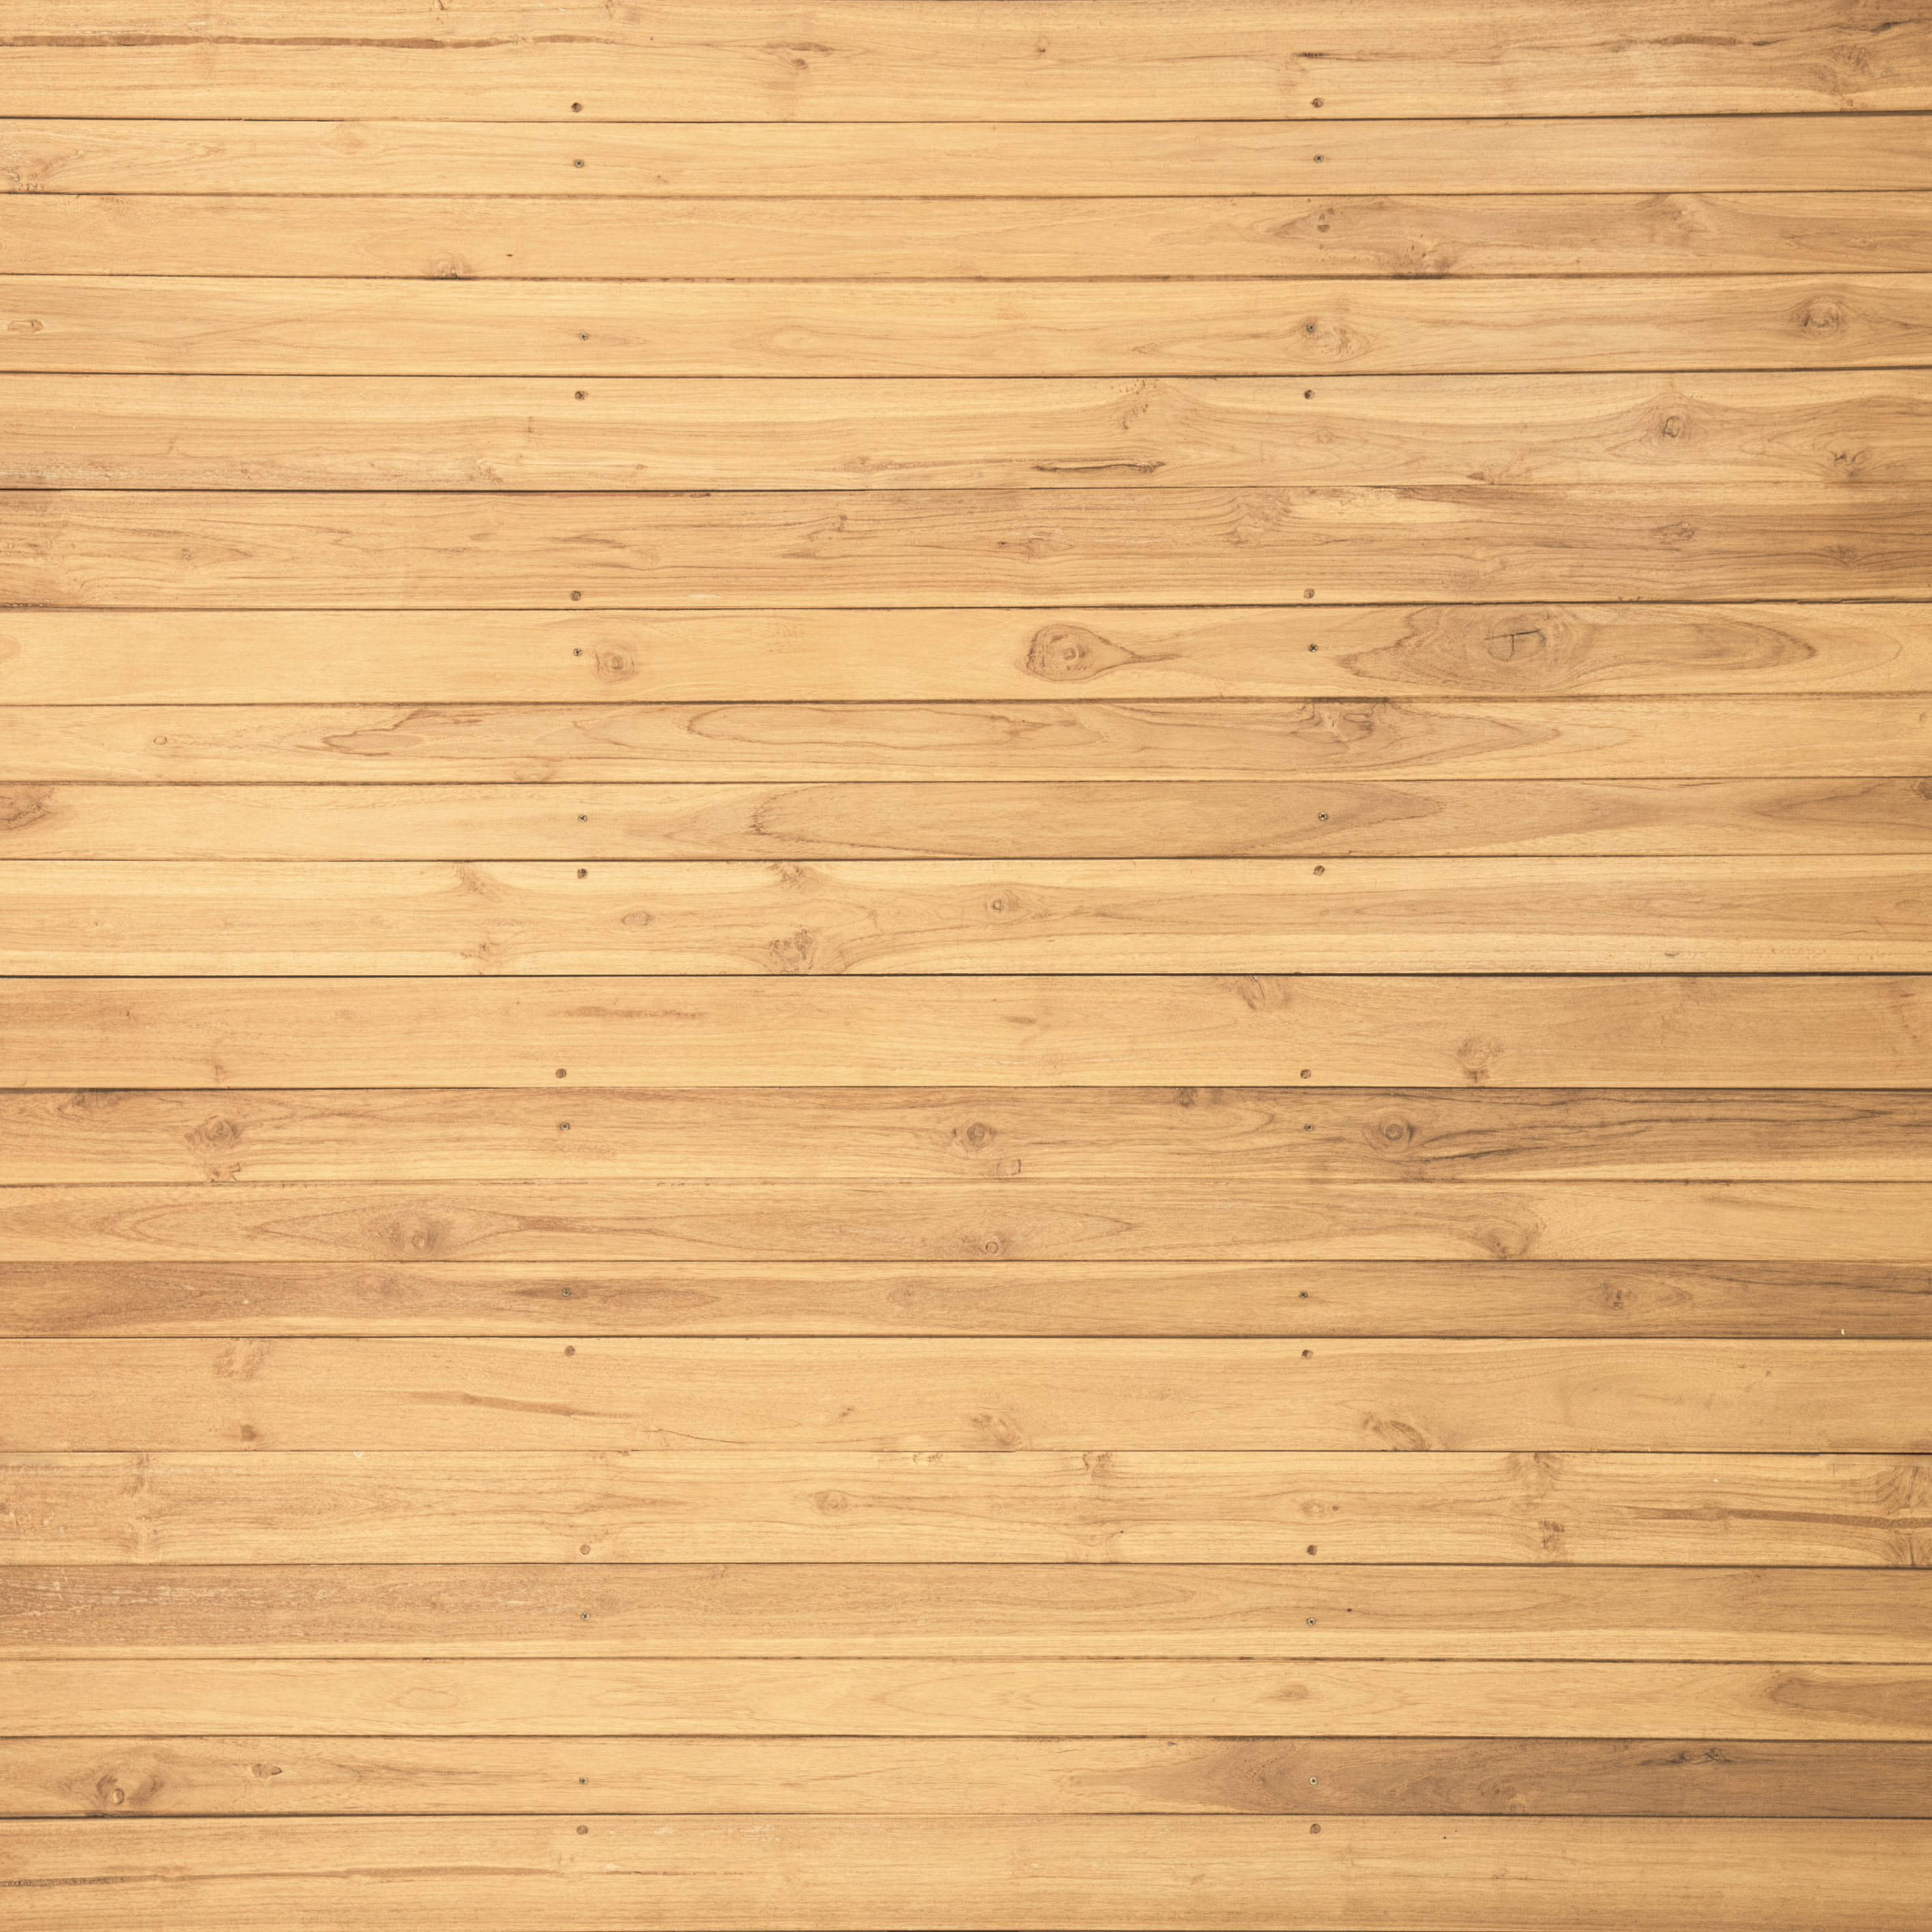 wooden flooring free stock photo of wood, building, construction, pattern AYBJROO